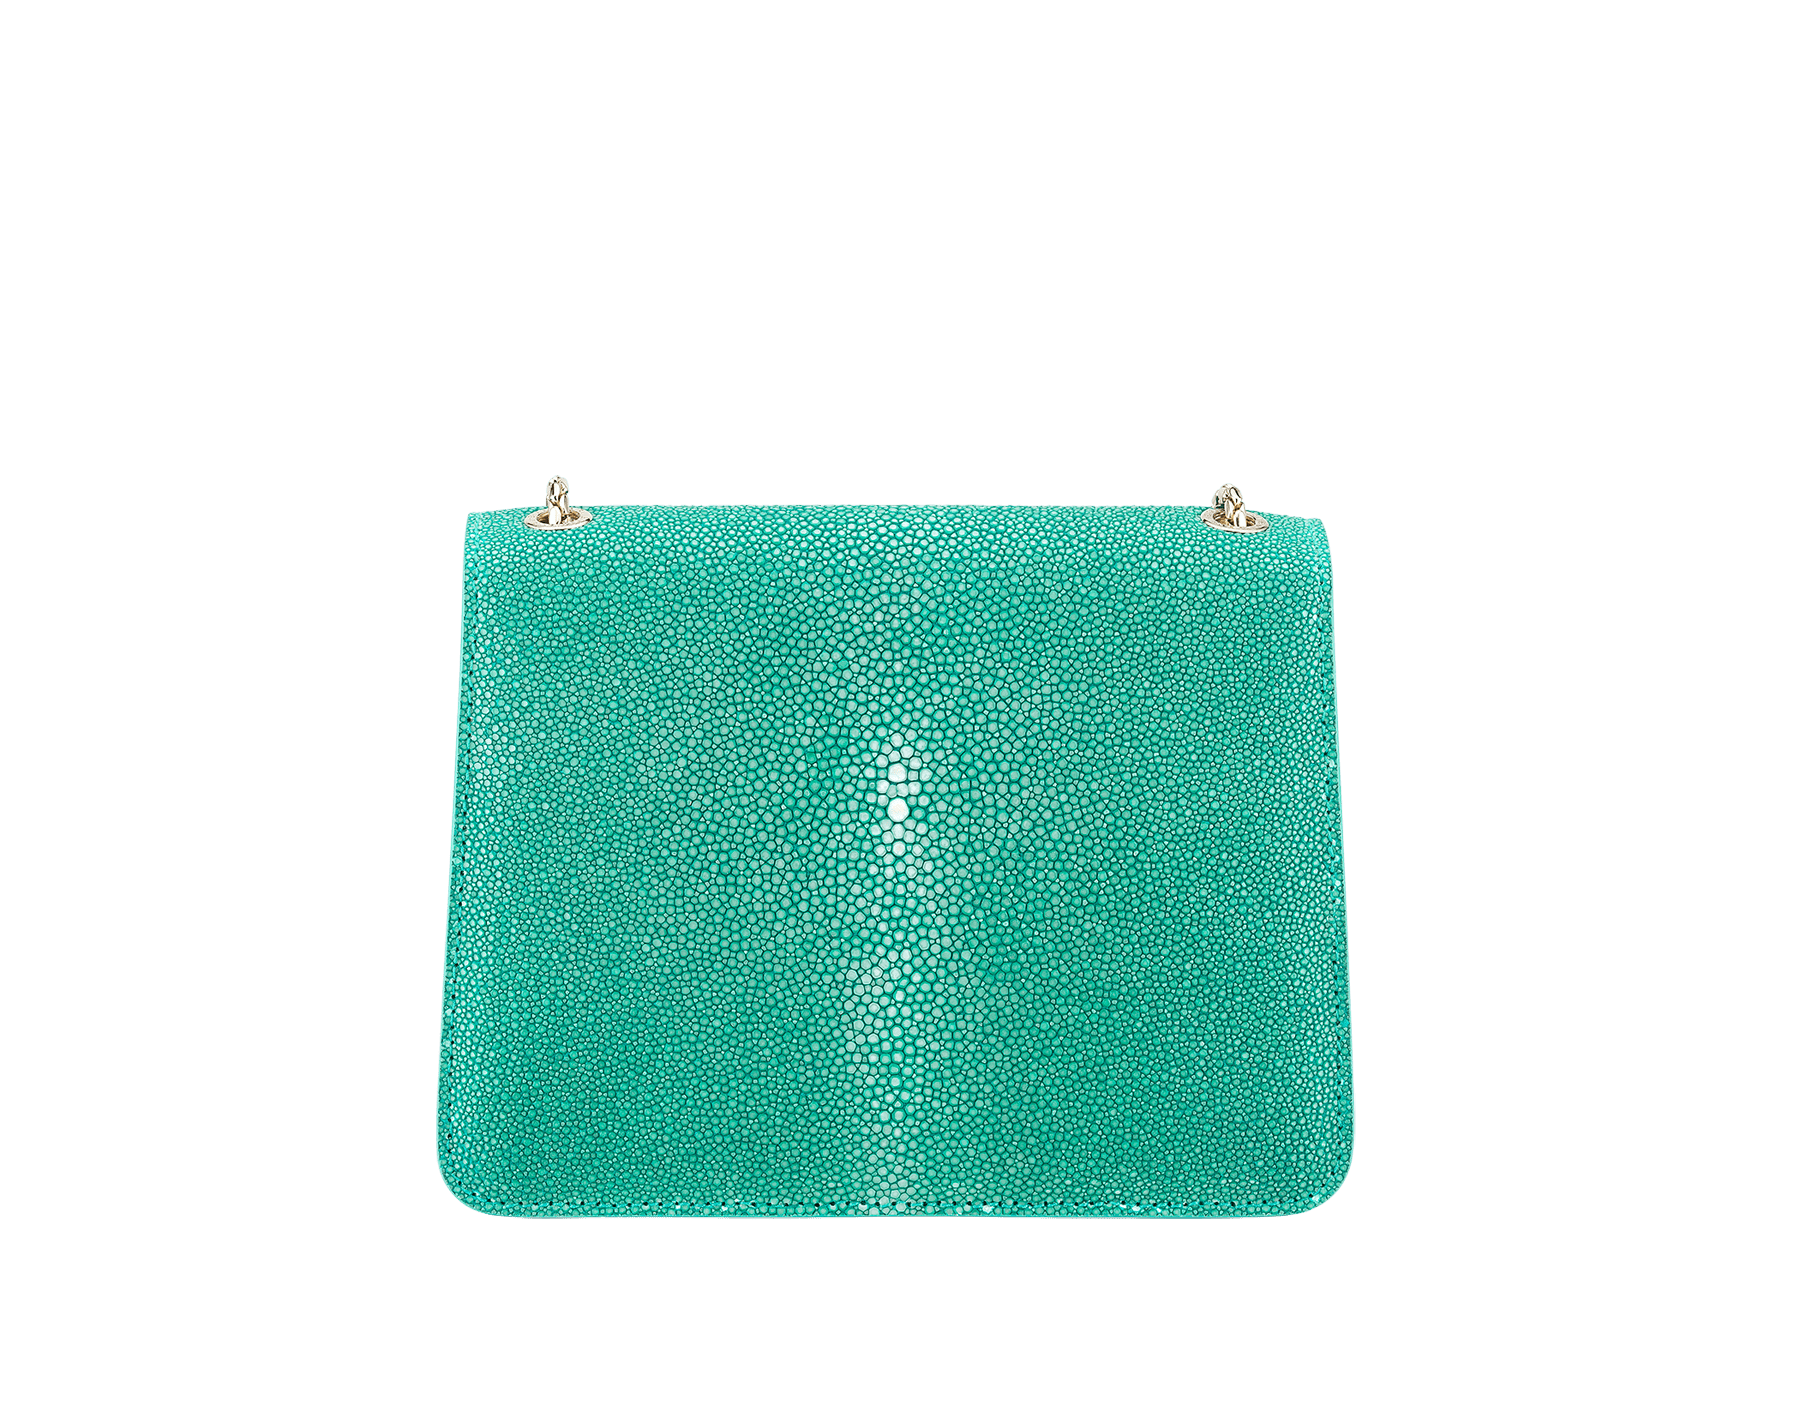 Serpenti Forever crossbody bag in tropical turquoise galuchat skin. Snakehead closure in light gold plated brass decorated with black and white enamel, and green malachite eyes. 288067 image 3